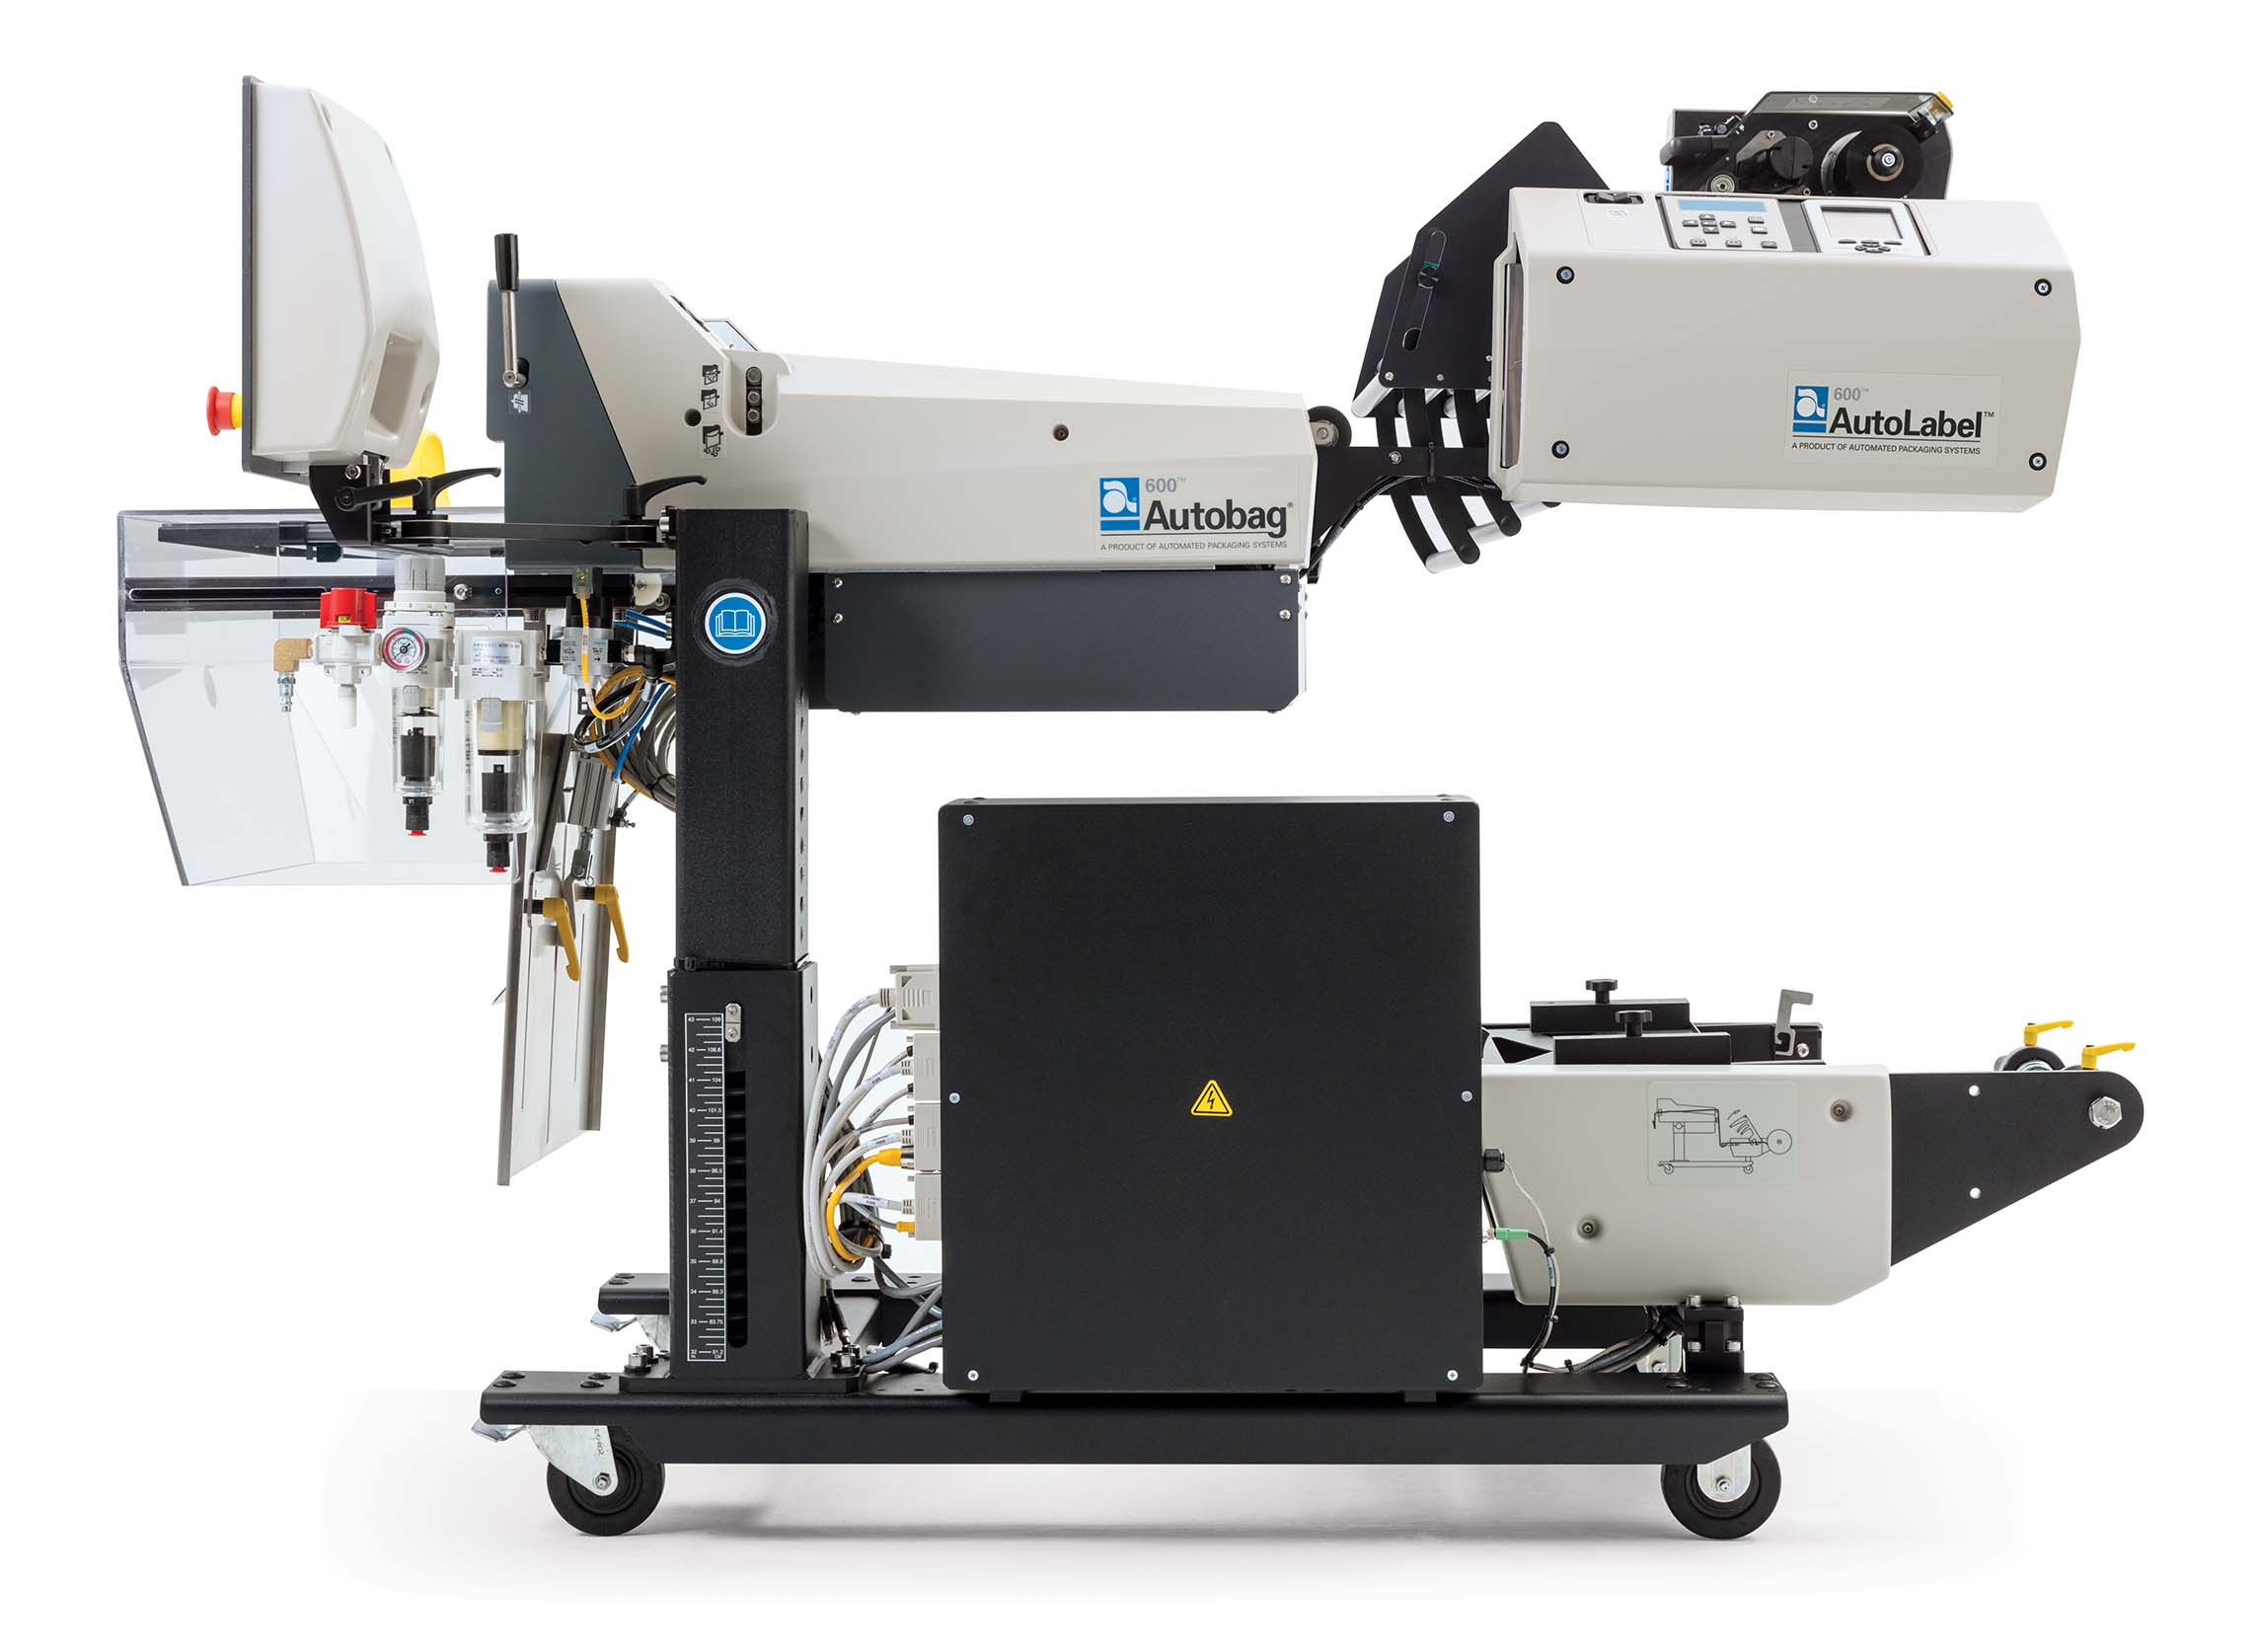 The AutoLabel 600 Wide Thermal Transfer Printer offers high